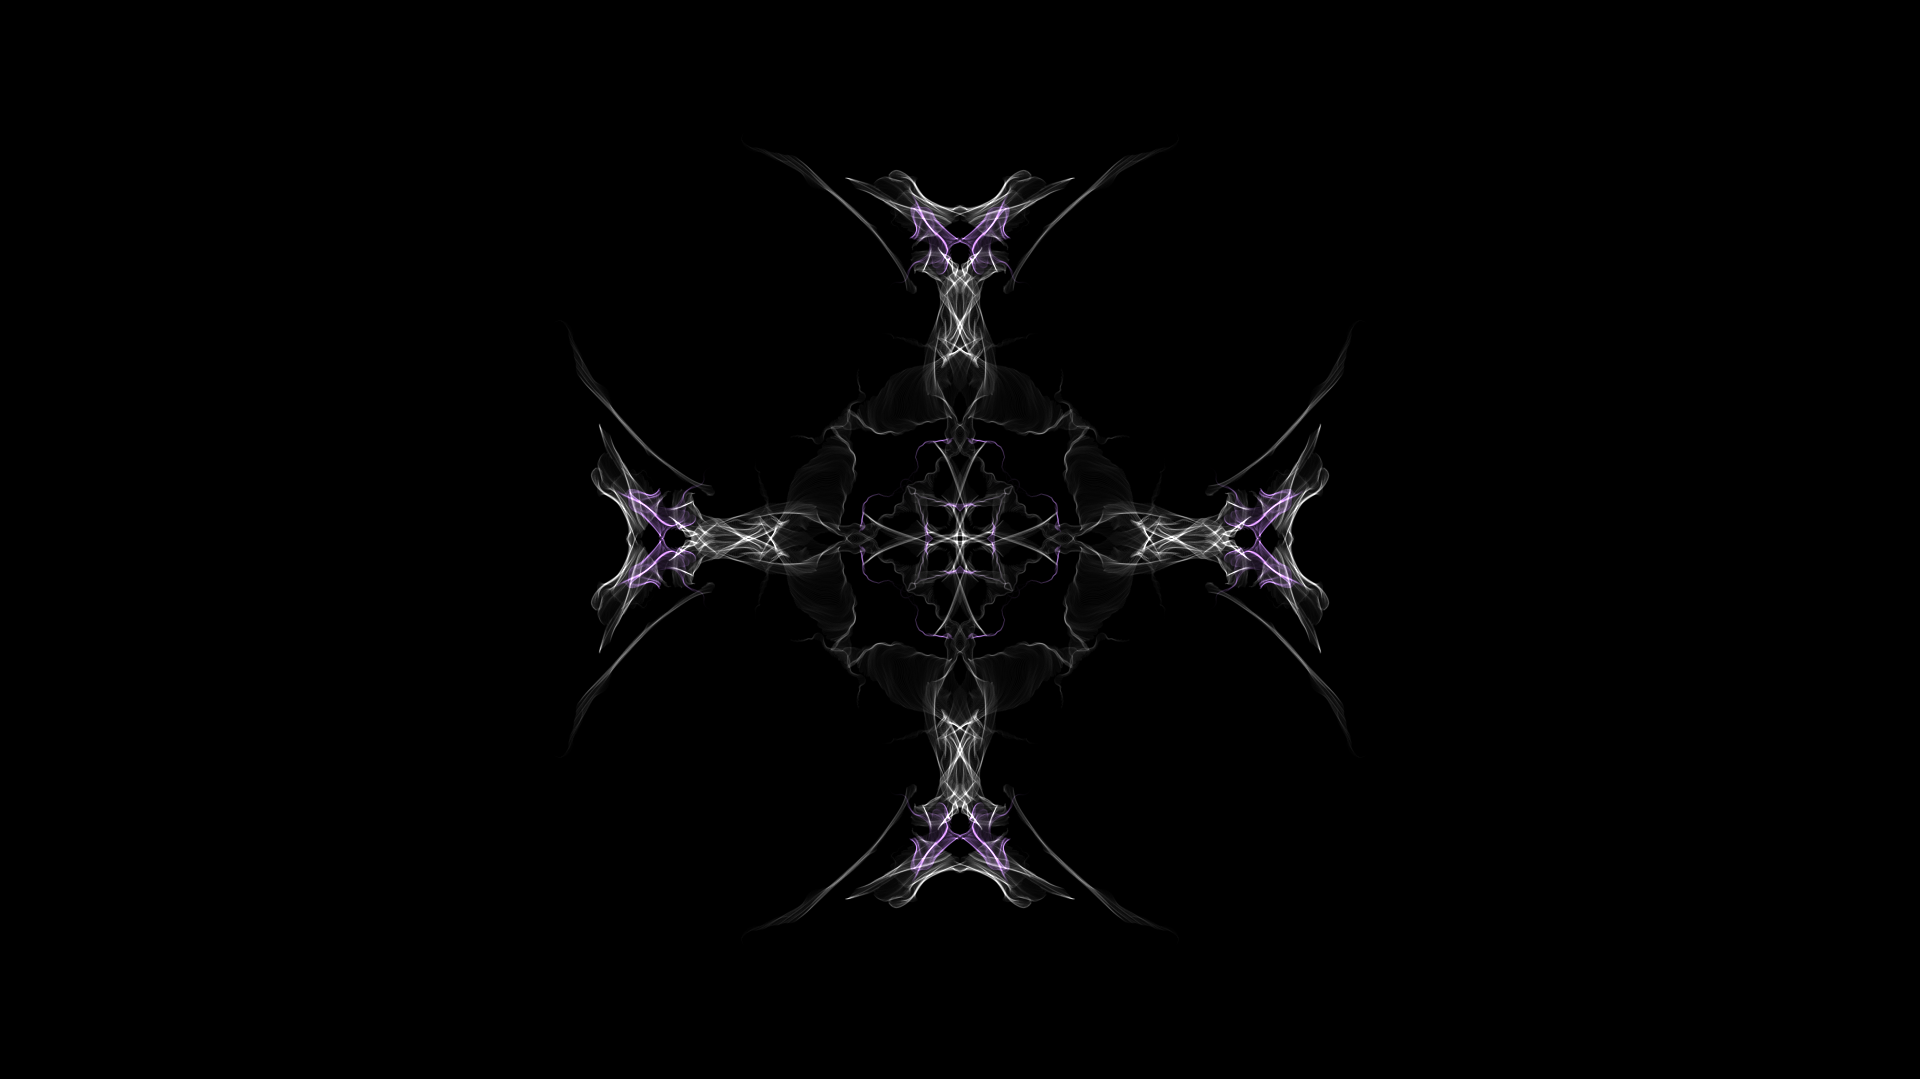 Wallpaper gothic iron cross by arimus79 on deviantart wallpaper gothic iron cross by arimus79 voltagebd Images